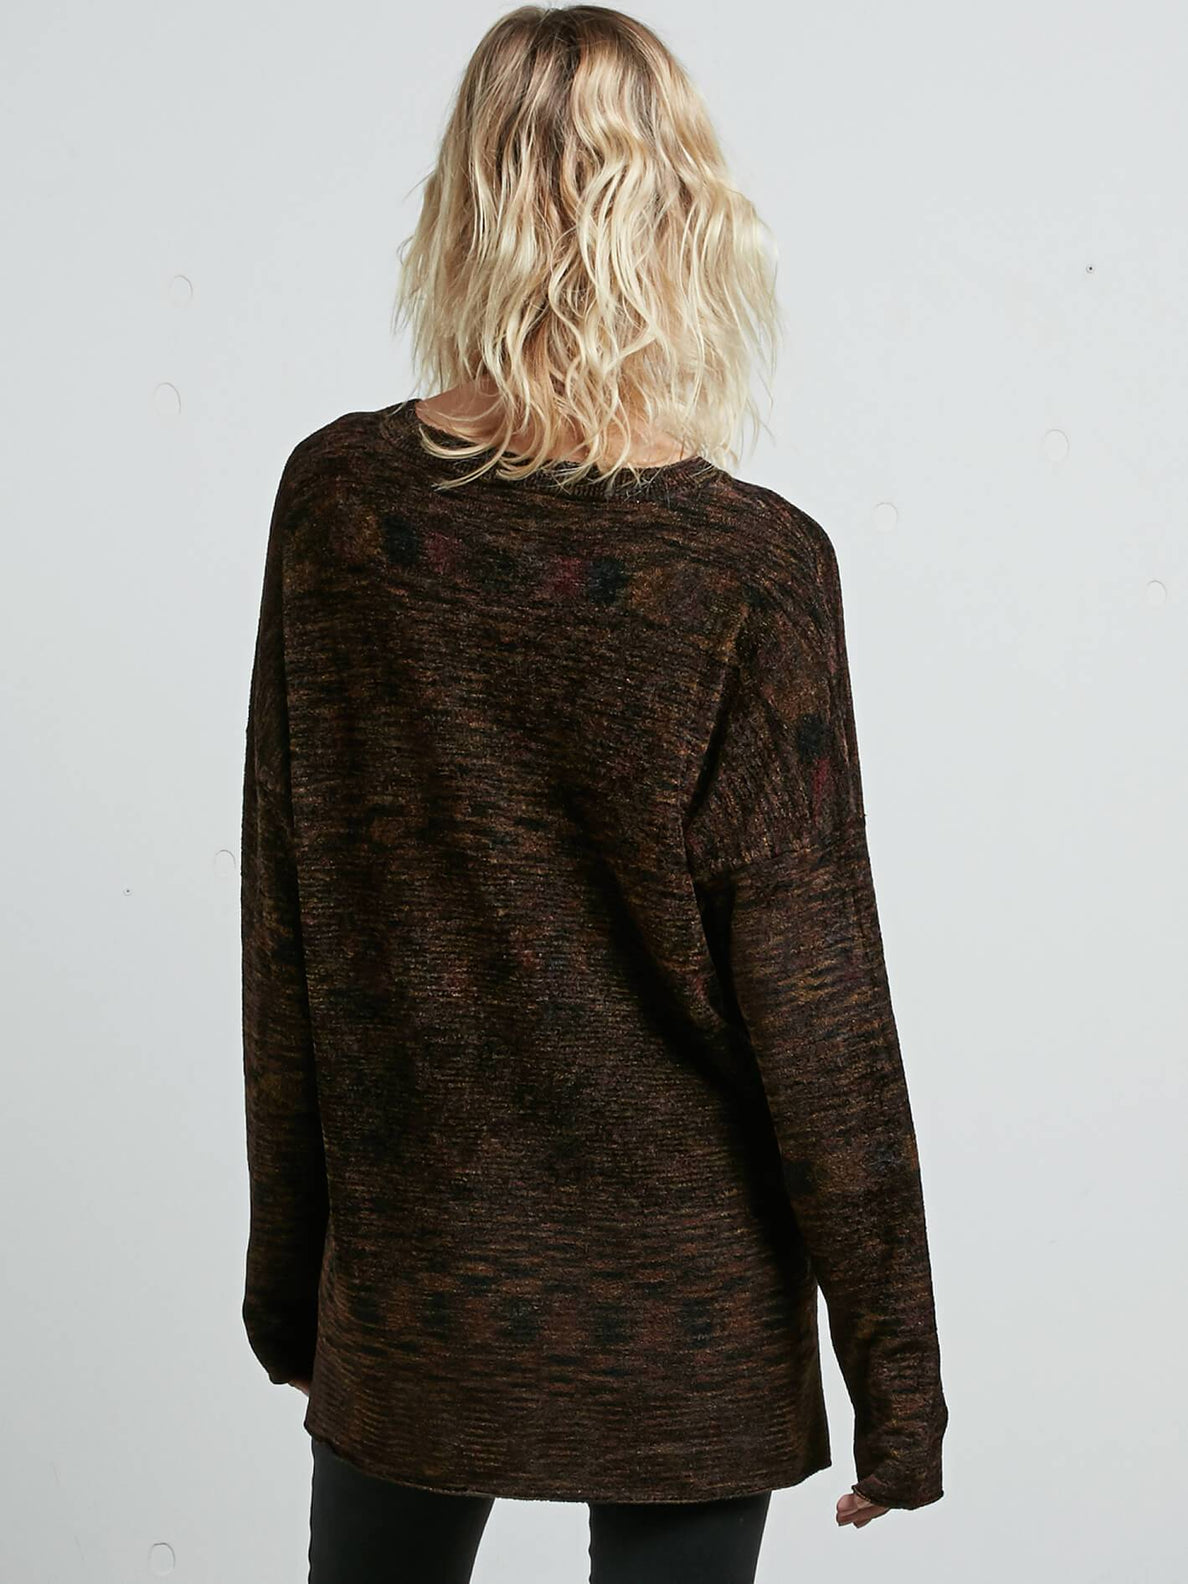 Yarn Moji Sweater In Black Combo, Back View